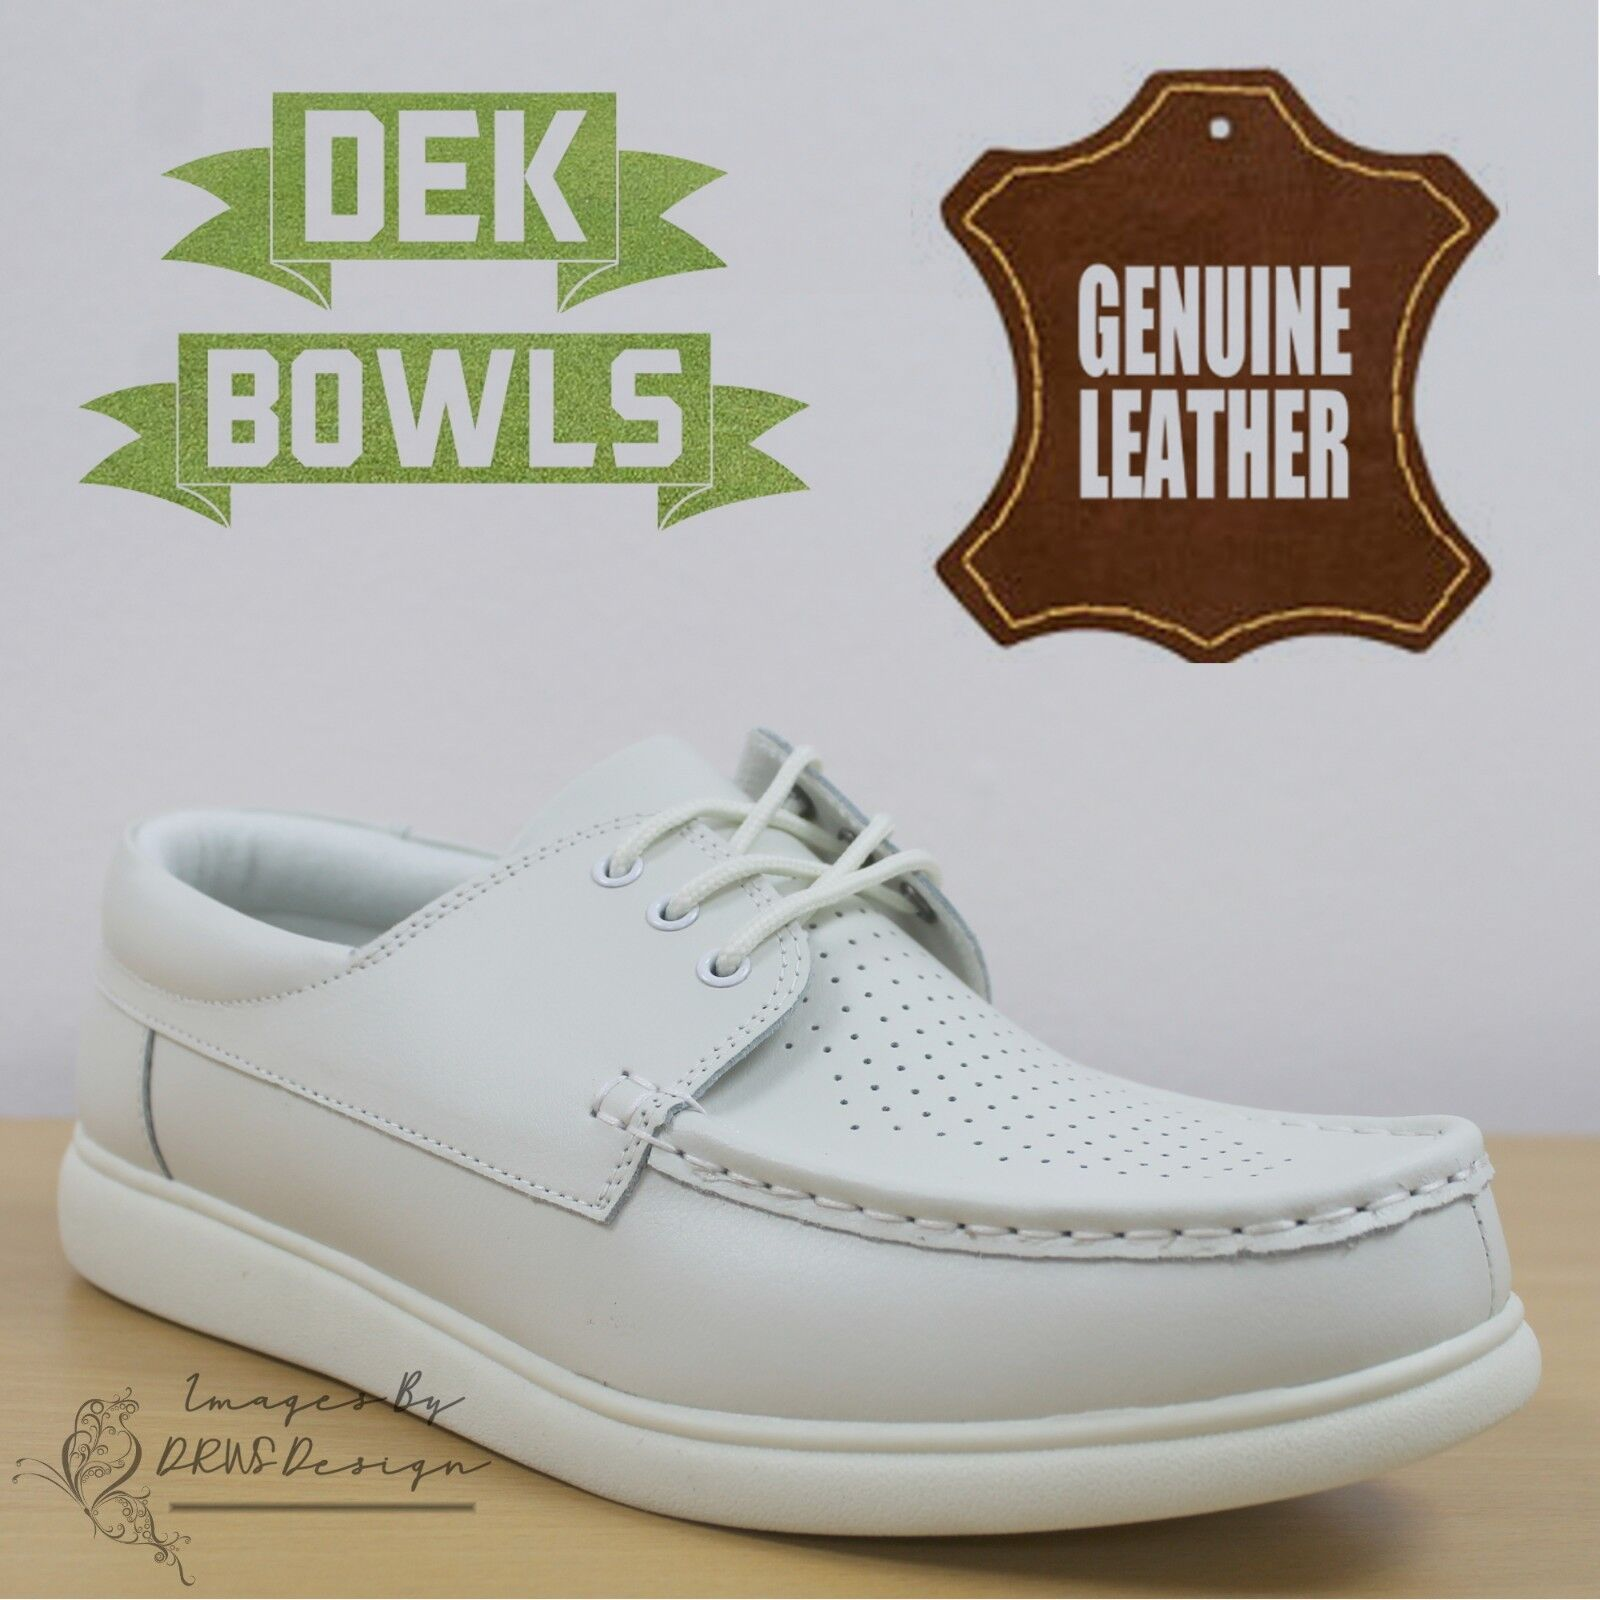 DEK Bowls Unisex Leather Lawn Bowls Trainers White Lace Up Men's & Women's shoes